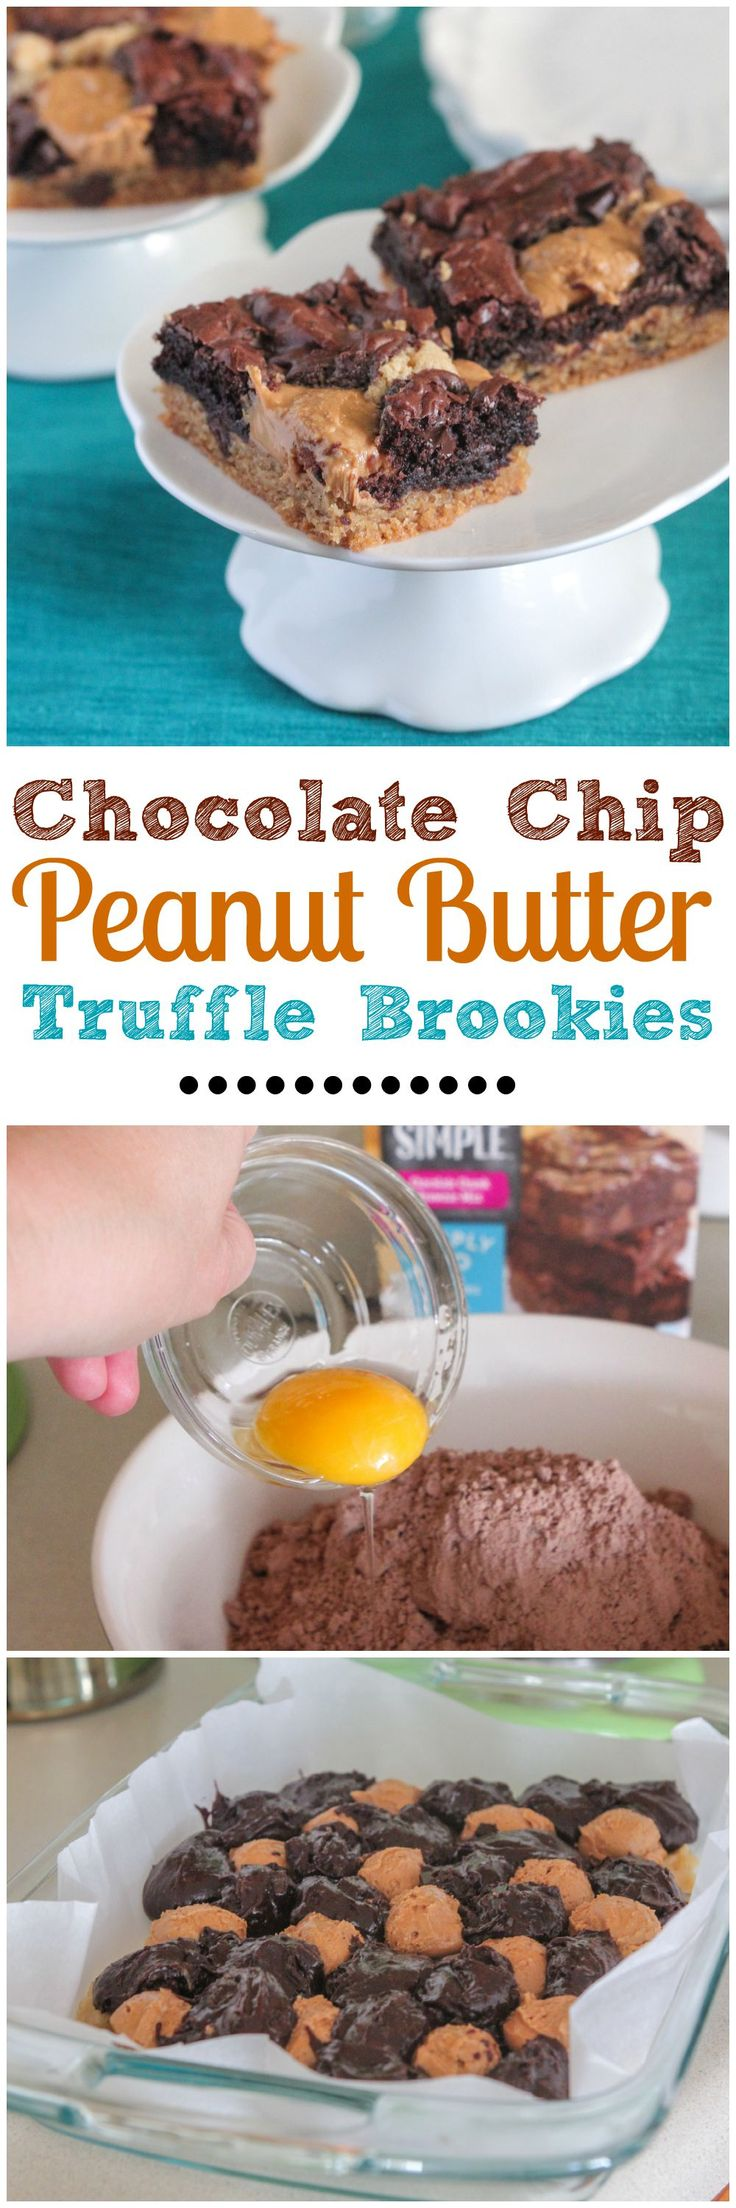 peanut butter topping and semisweet chocolate is the perfect chocolate ...